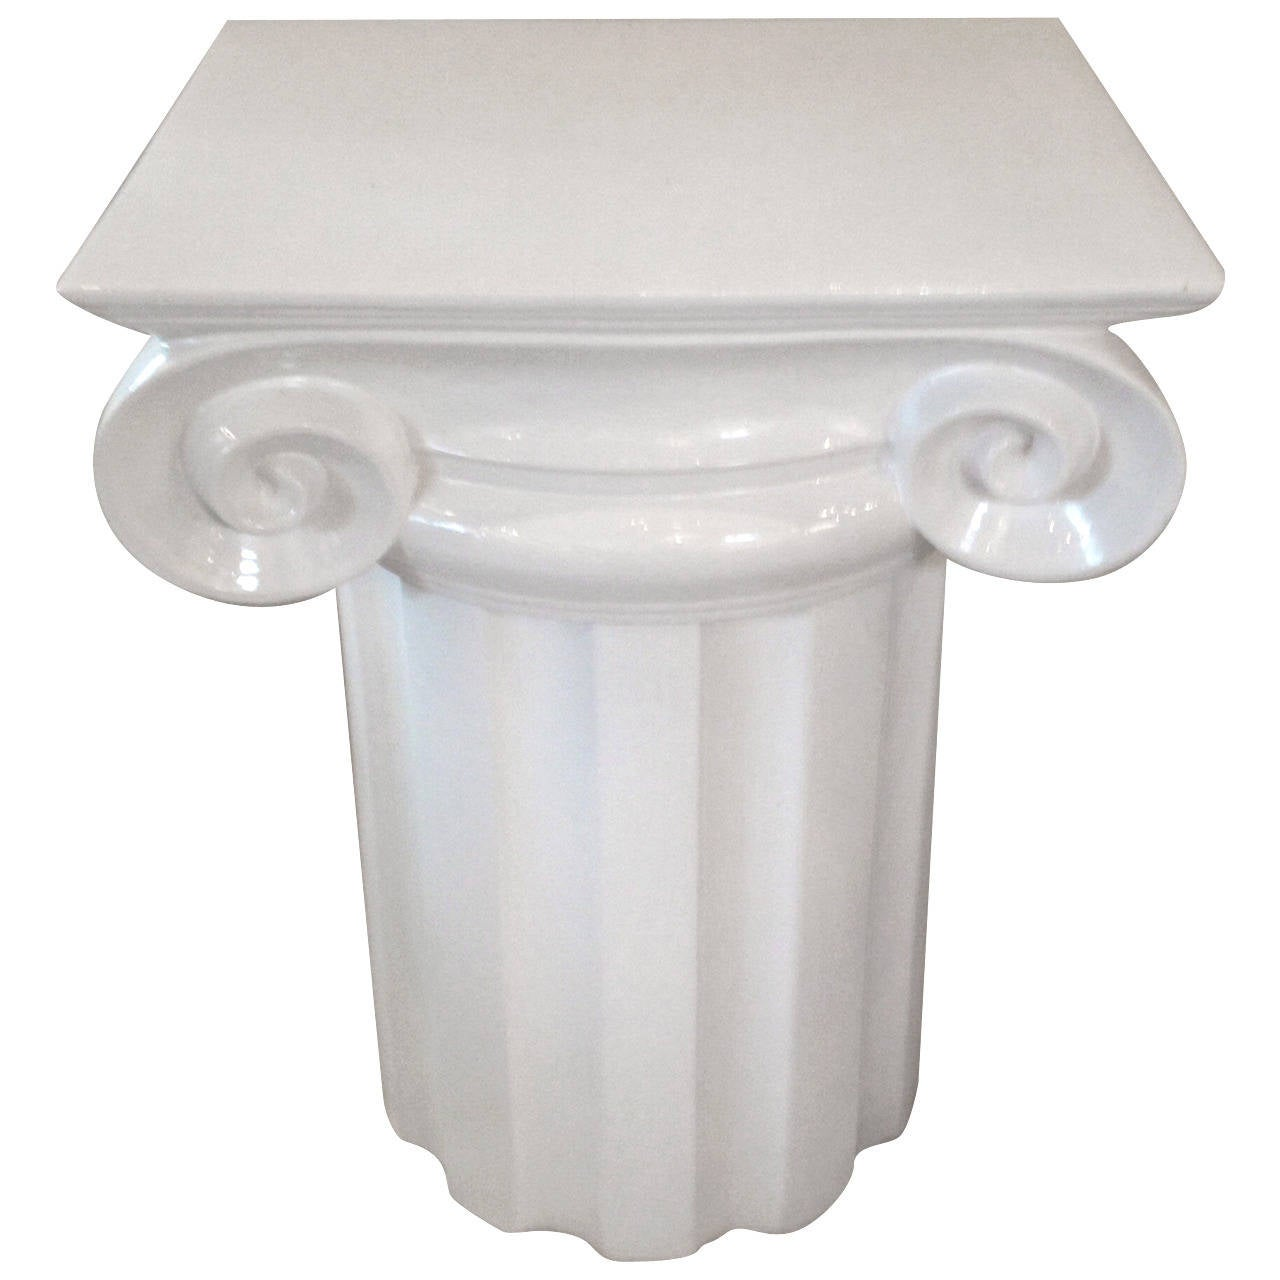 Ionic column white ceramic mid century end table or pedestal for sale at 1stdibs - Ceramic pedestal table base ...